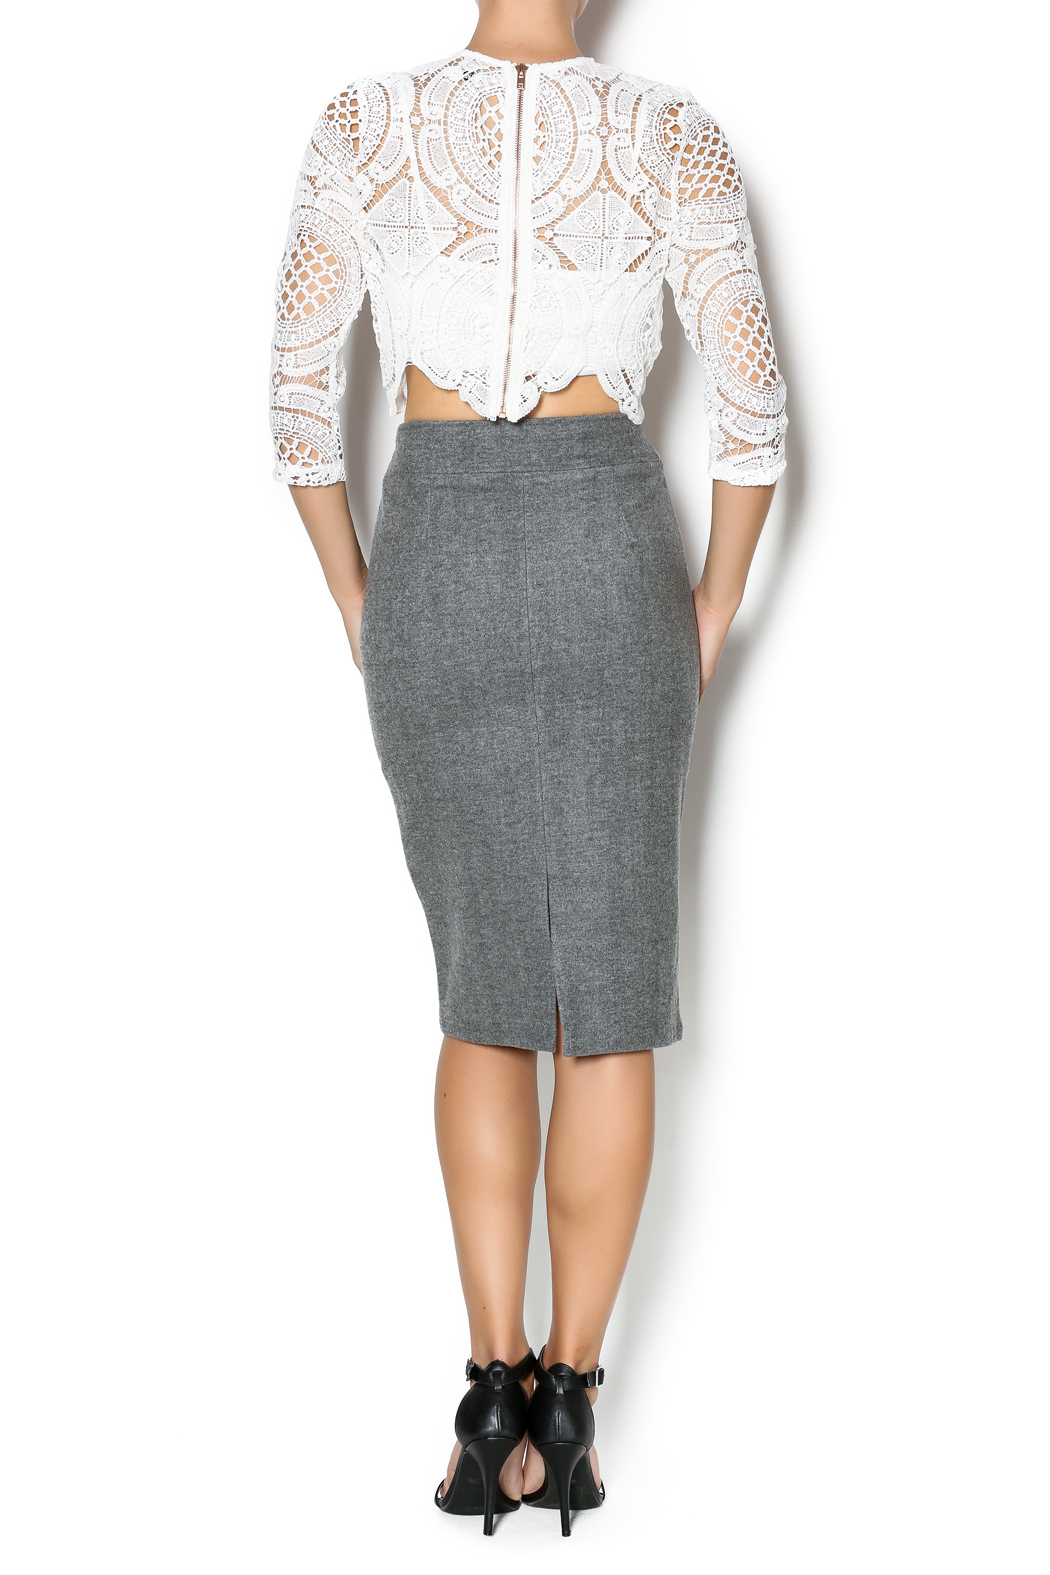 FRNCH Grey Pencil Skirt from Pennsylvania by Flirt Women's ...